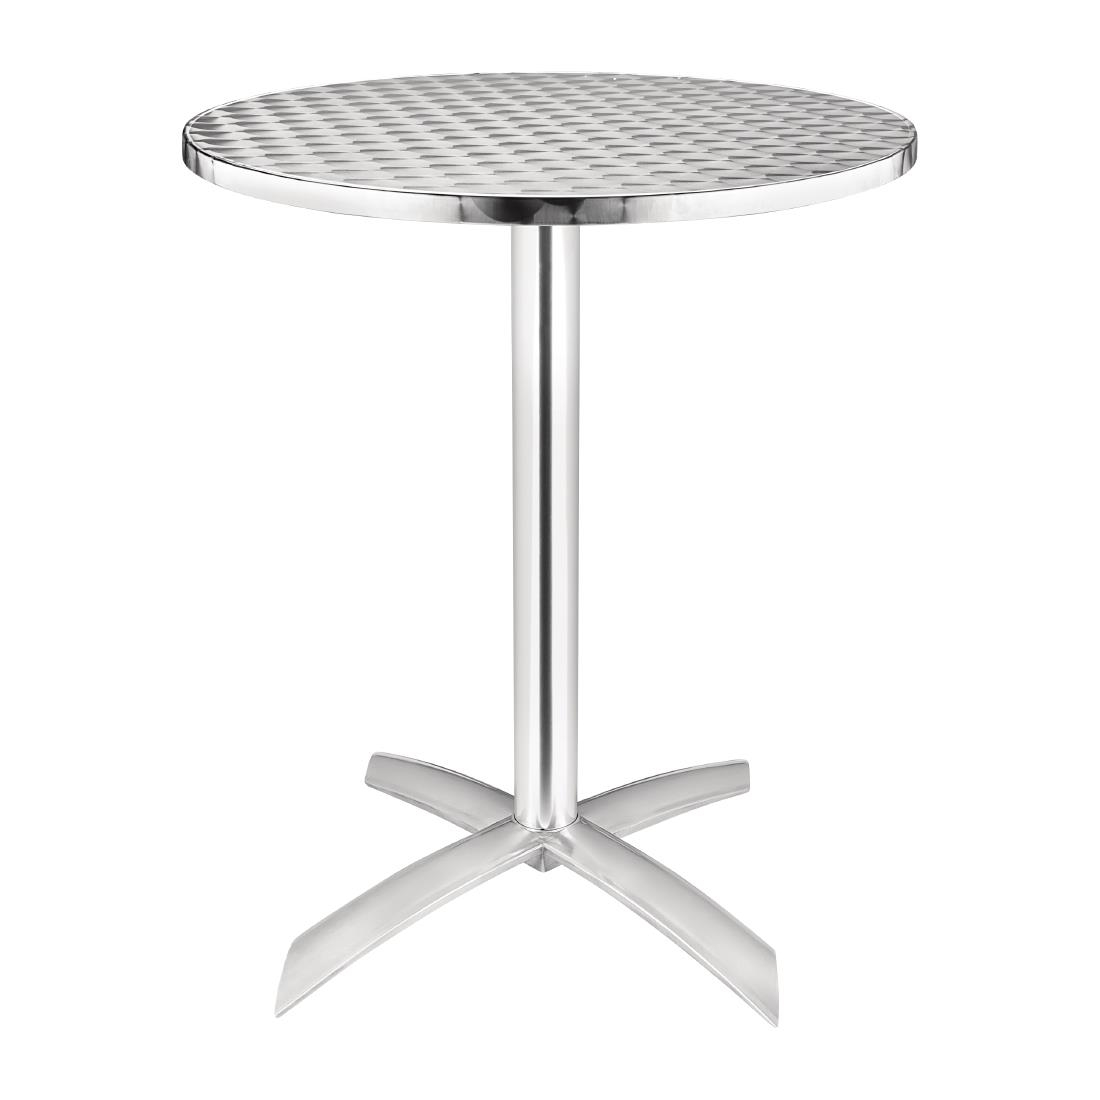 Stainless Steel Flip Top Table U42 - Round